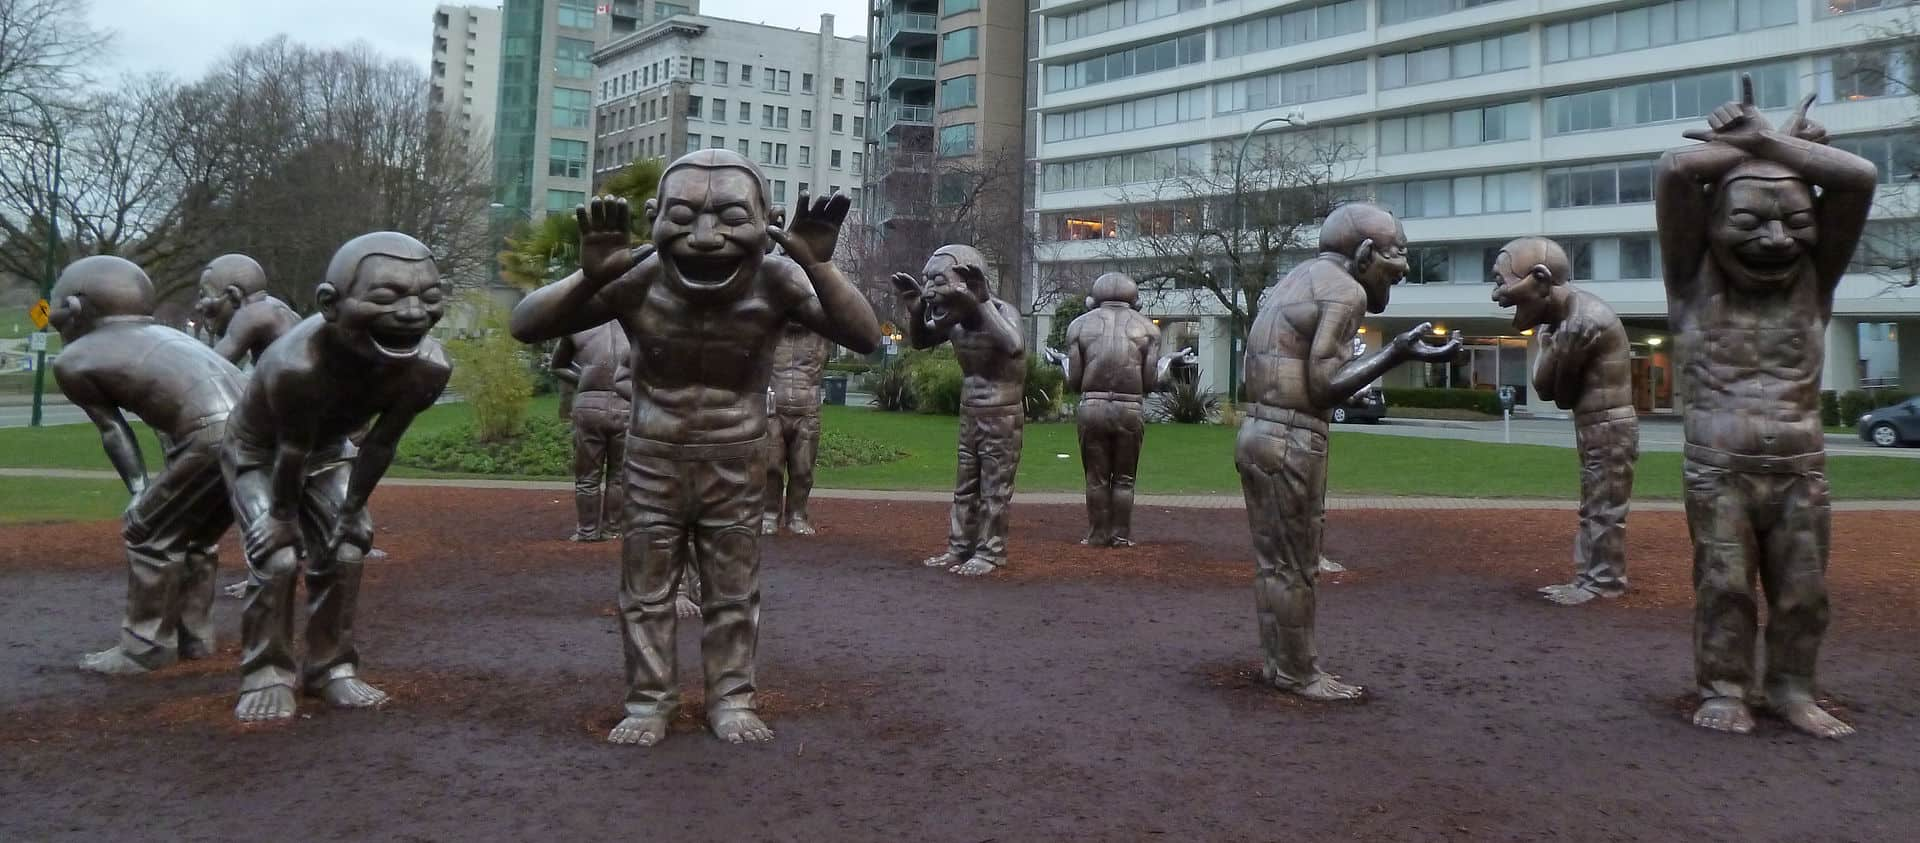 Vancouver Public art in Coal Harbour - A-maze-ing Laughter, a sculpture by Yue Minjun